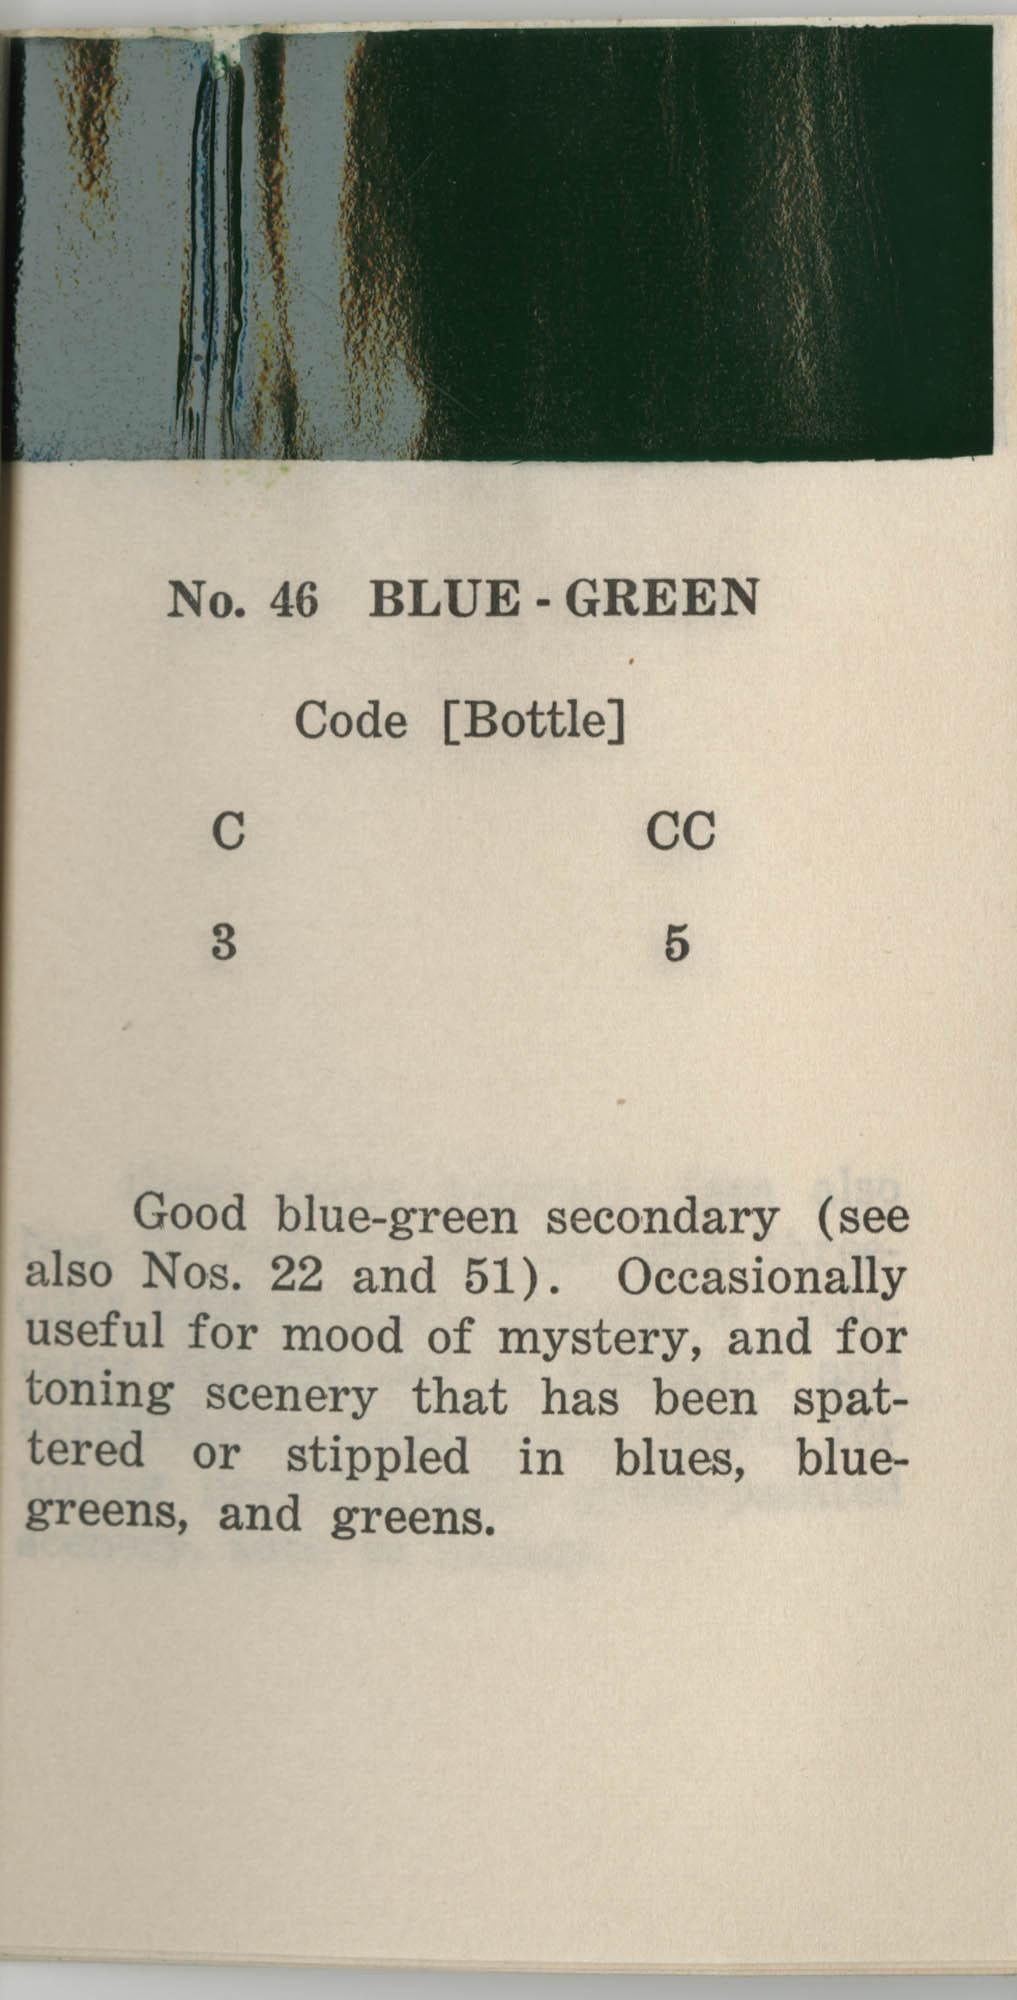 Colored Gelatine for the Theatre School and Community Playhouse, Page 19